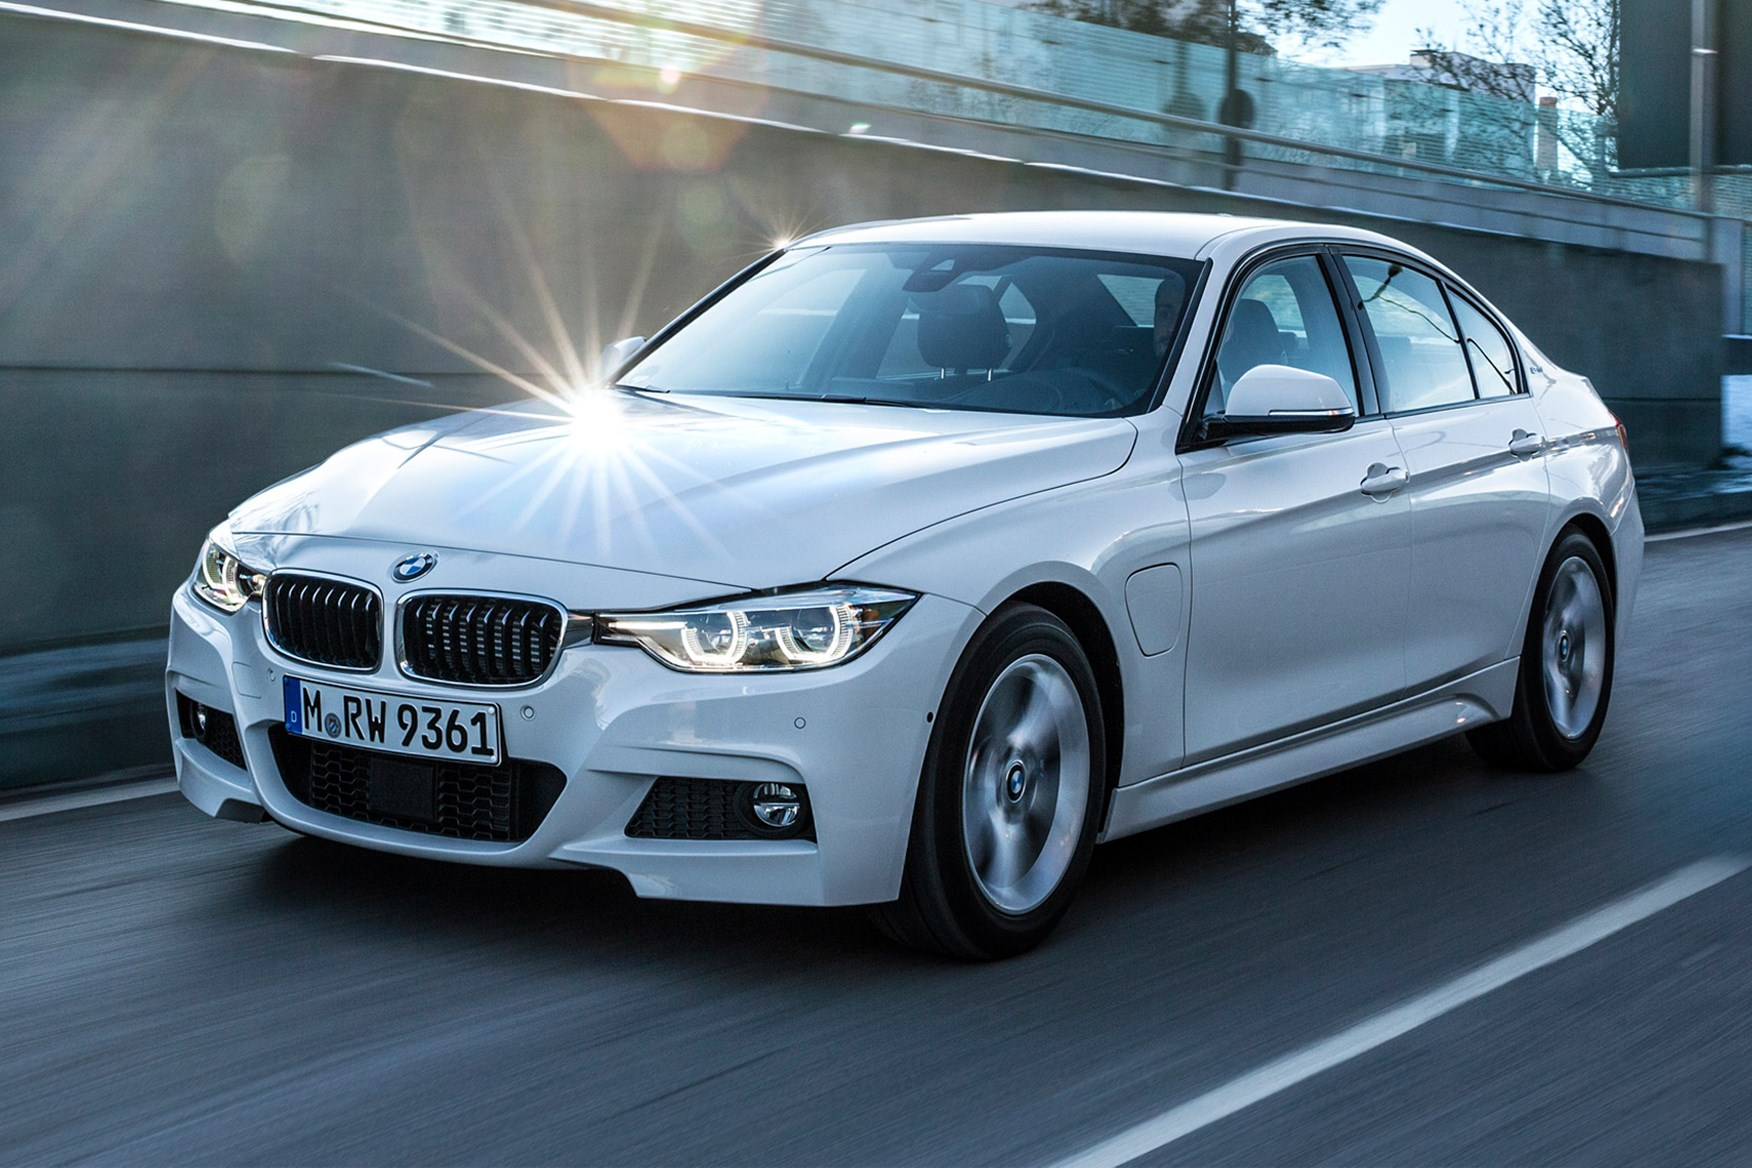 Bmw 330e Review Uk Bmw 3 Series 330e 2016 Plug In Hybrid Review By Car Magazine